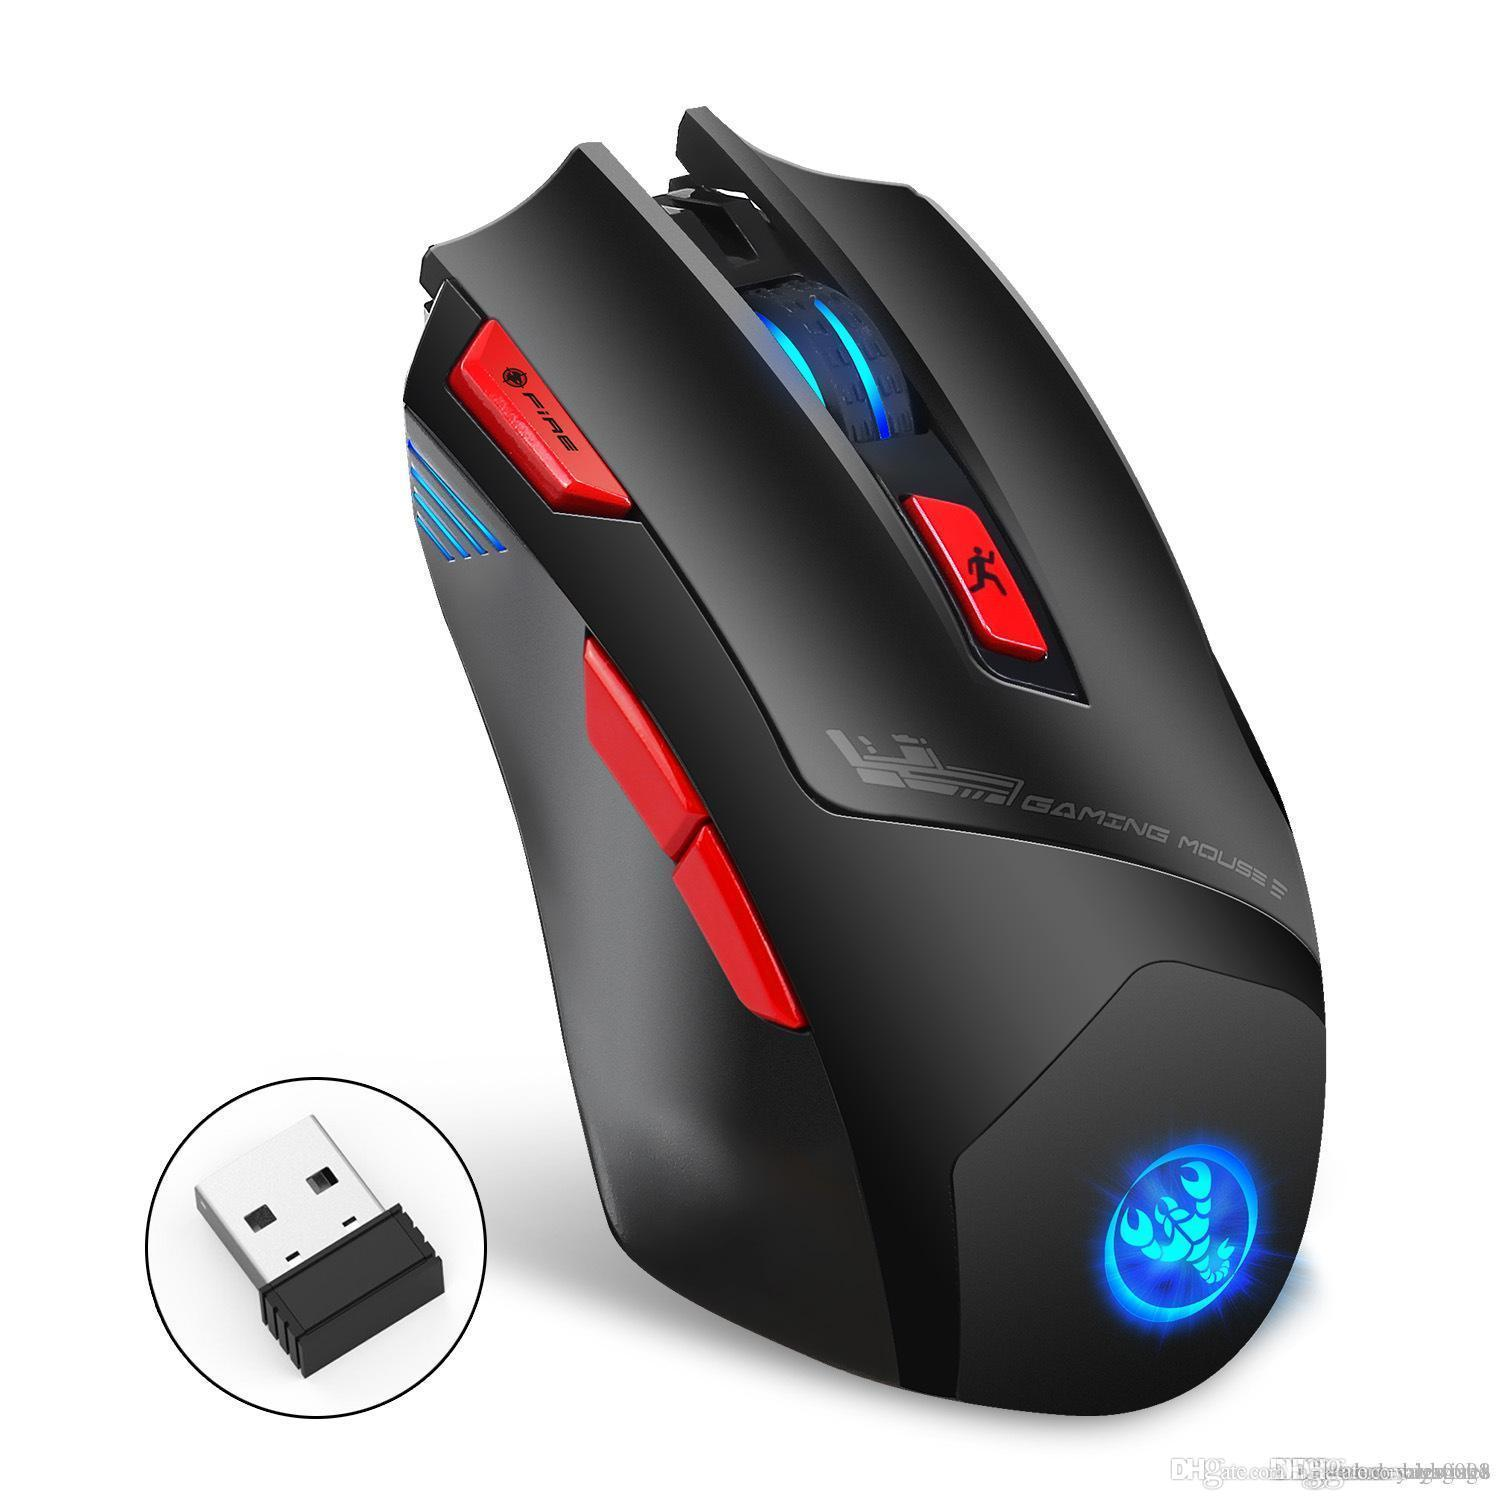 Wireless Gaming Mouse 2.4GHz Mouse Ergonomic Design Mice Adjustable 4800DPI USB Rechargeable Mouse Laptop miceinputs